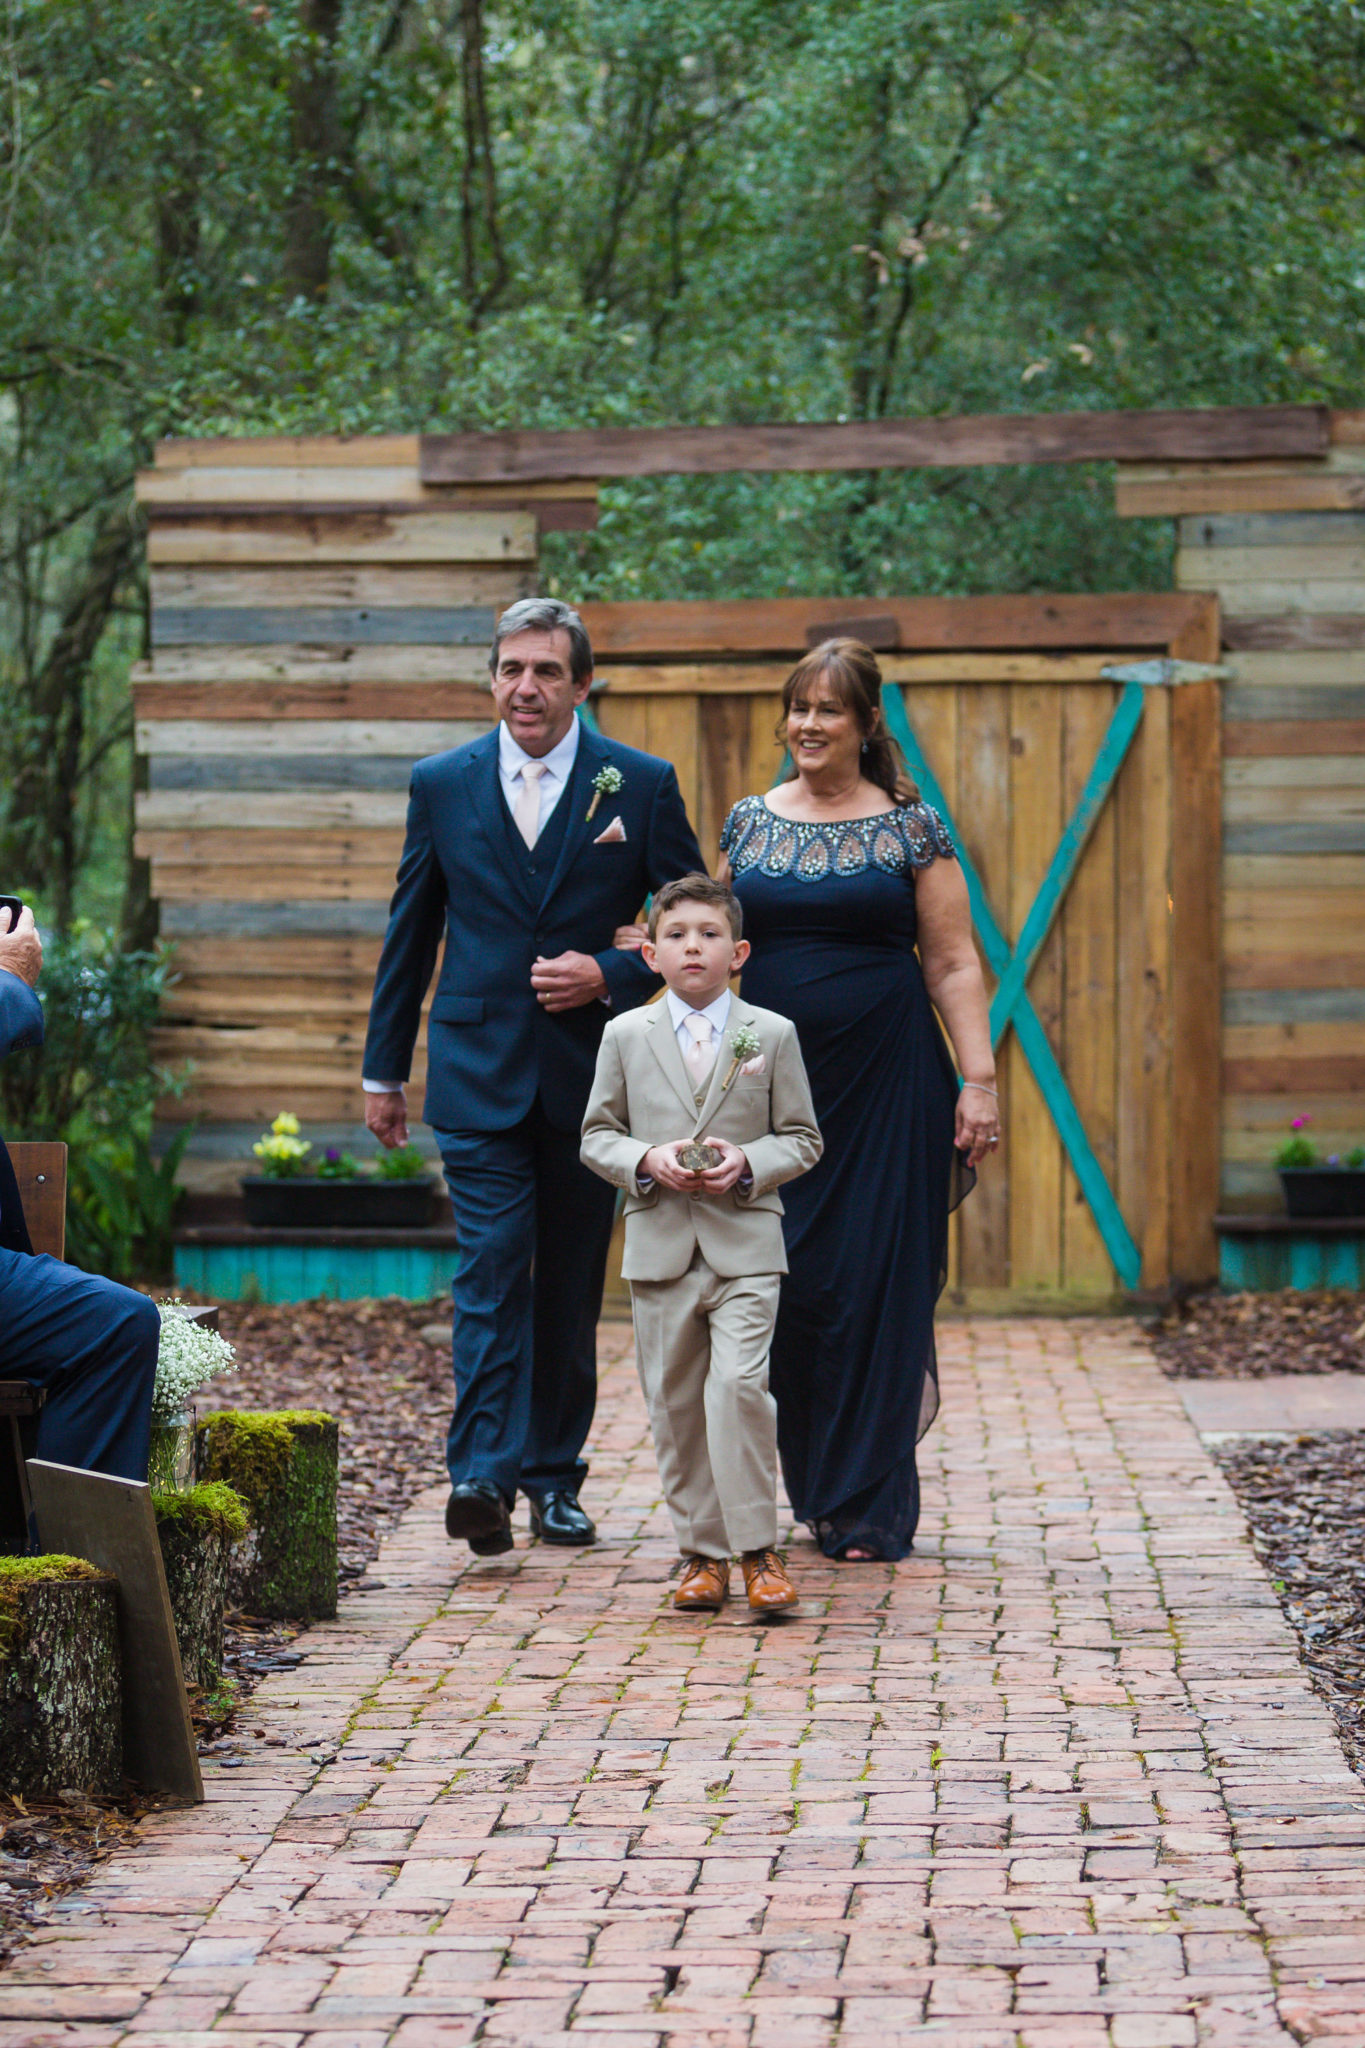 Mother and father of the groom walking down the aisle with the ringbearer and son of the groom.